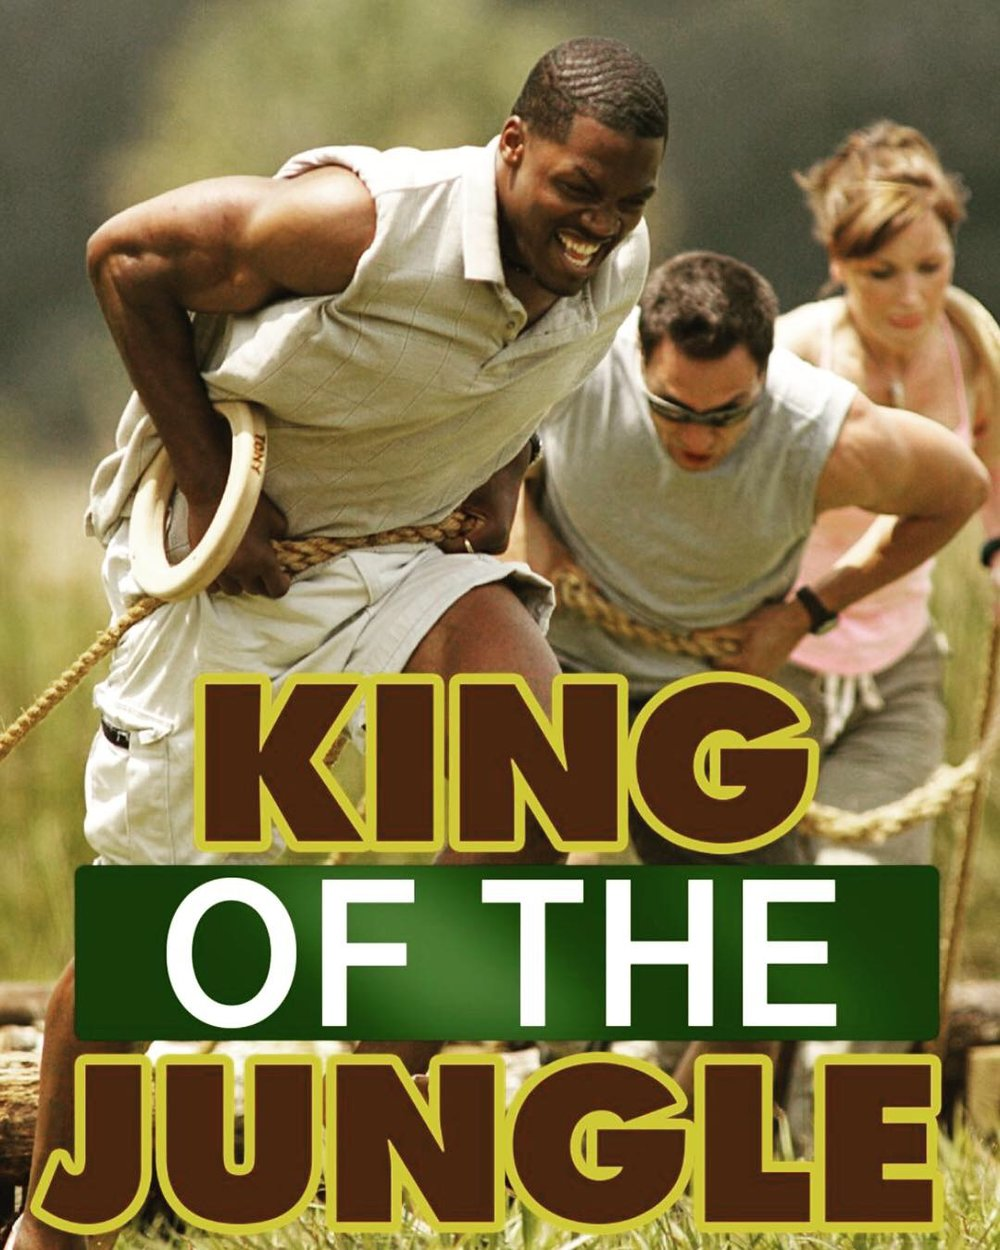 "In 2004, TC deciding on a whim to audition for the second season of Animal Planet's new hit reality television show, ""King of the Jungle"", and not only was he selected—but emerged as the winner! The show centered around animals and their amazing abilities, with 12 contestants fighting for the grand prize of hosting his or her own show on the network. After 5 weeks and 13 episodes, TC was crowned champion, and was awarded with a hosting job on Animal Planet which aired in the fall of 2004. This was TC's first ever appearance on national TV. -"